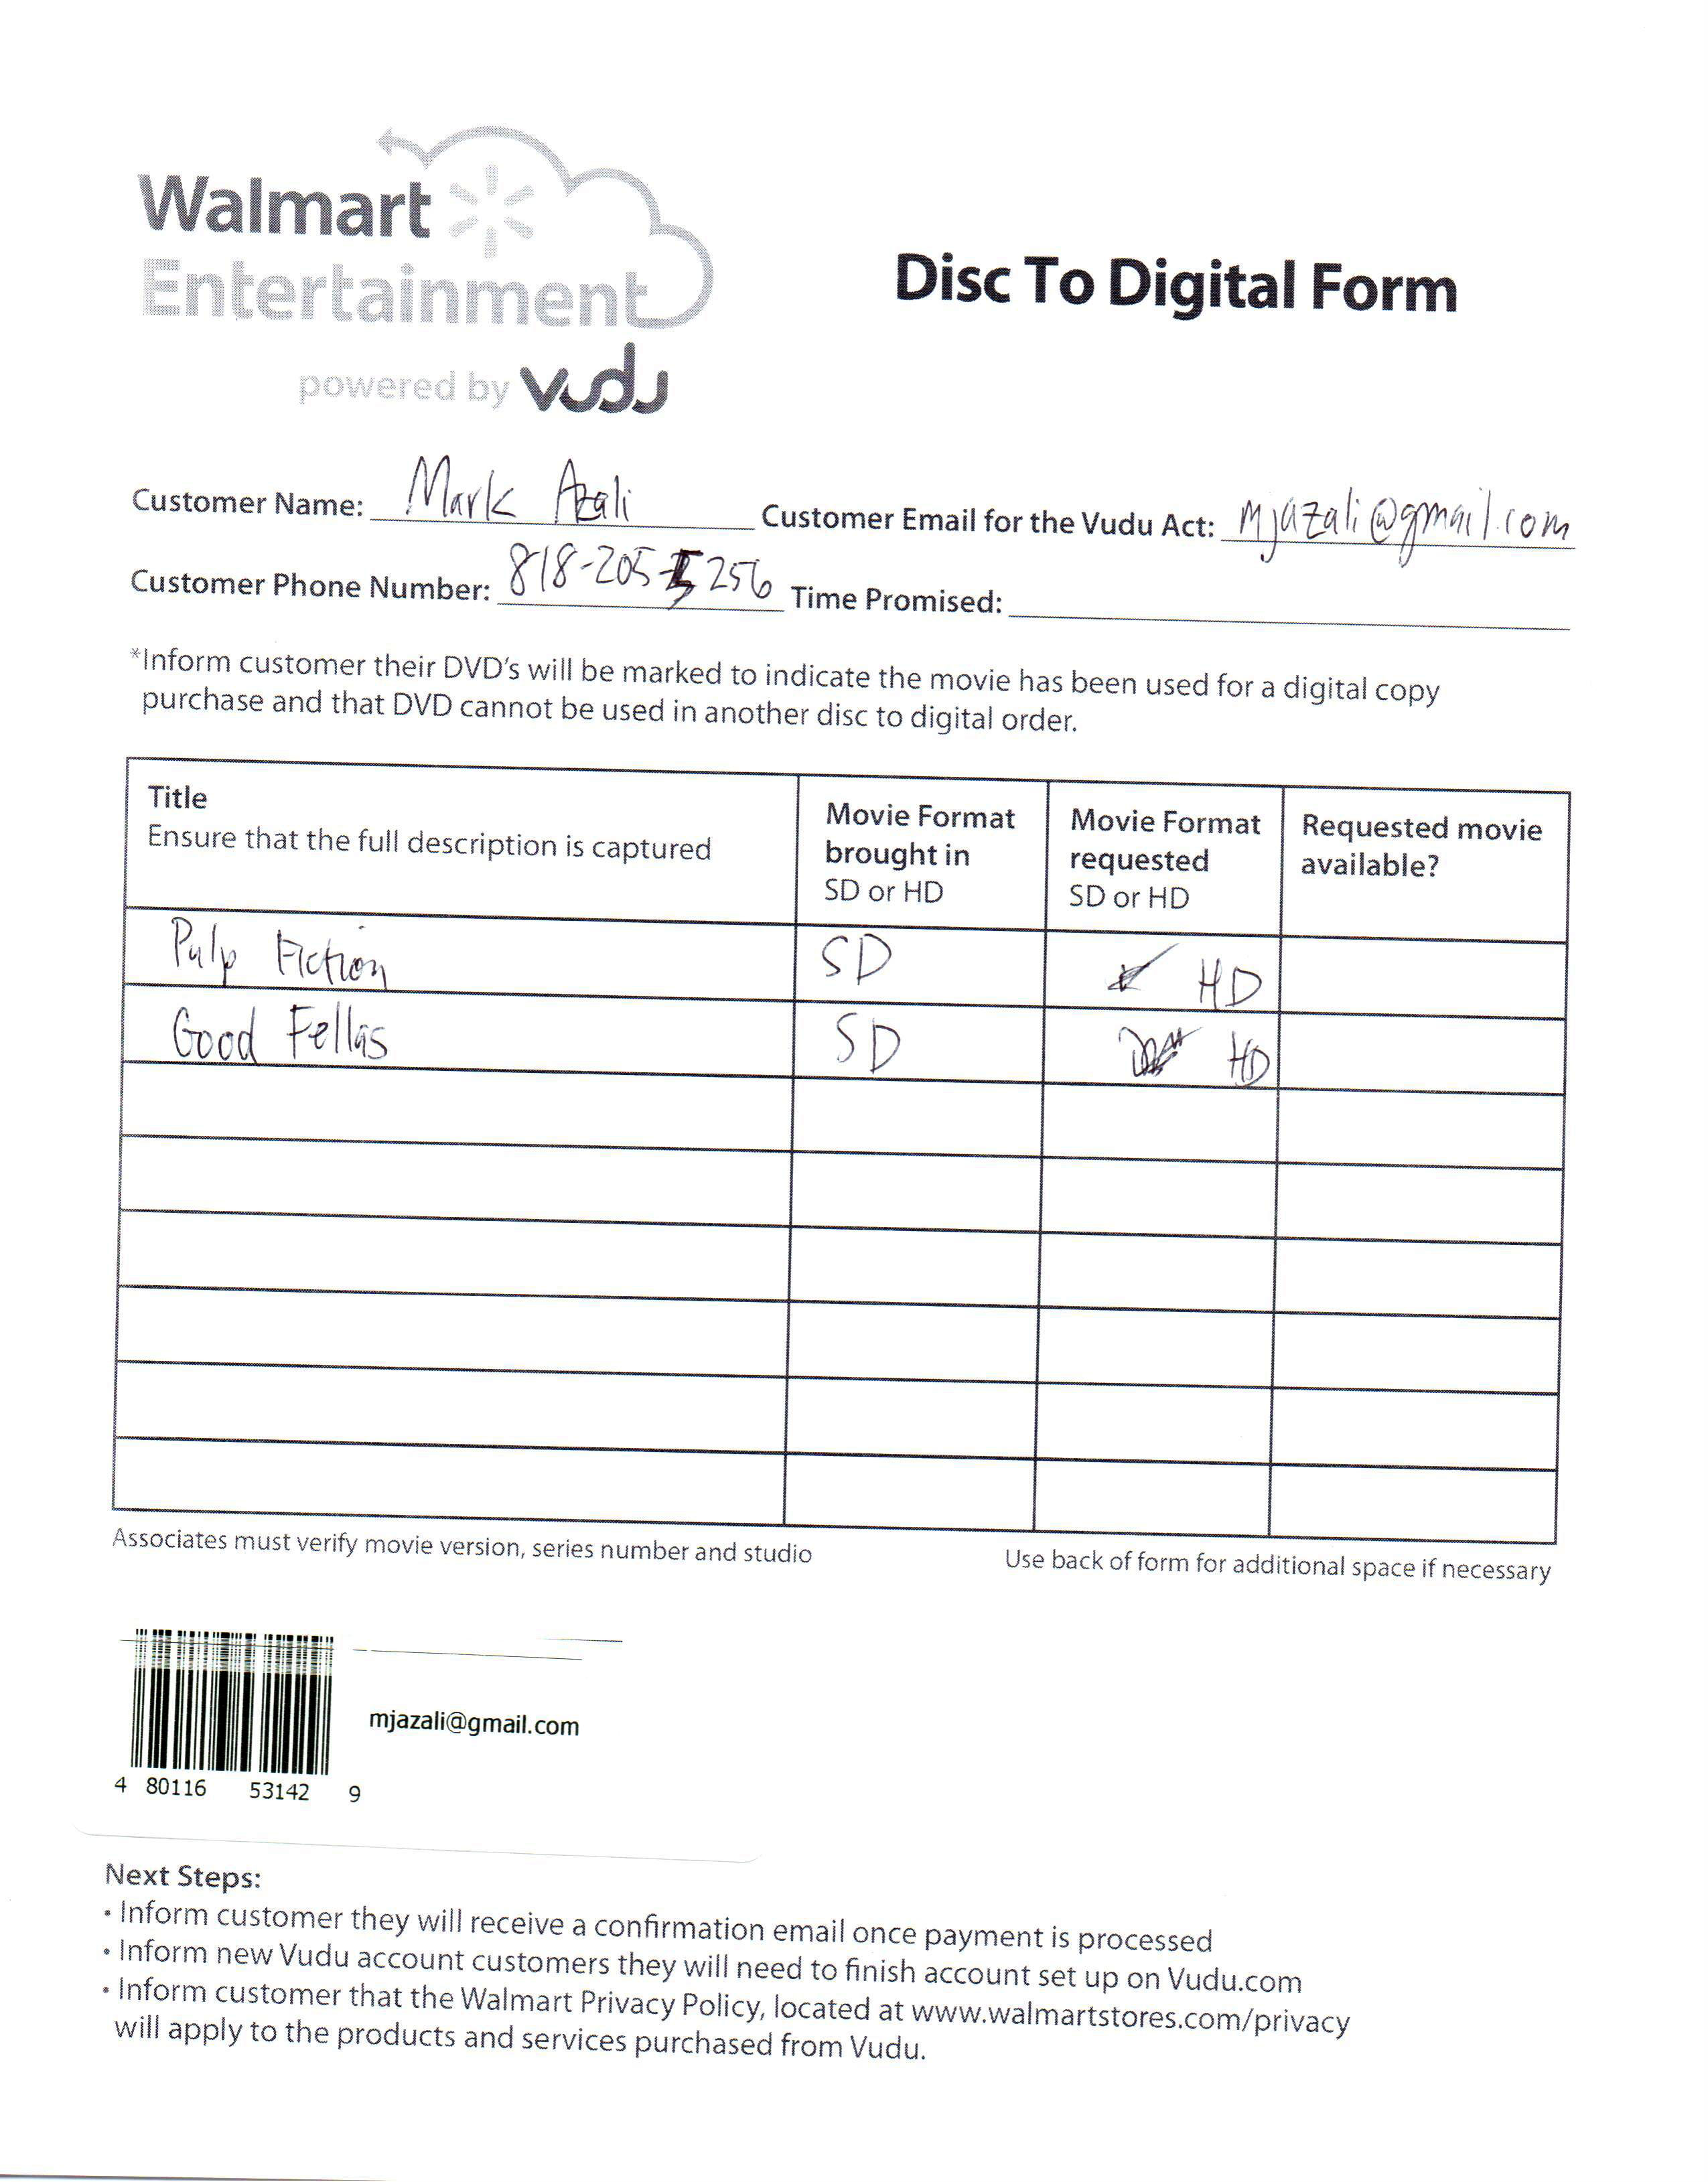 Walmart/VUDU disc-to-digital form